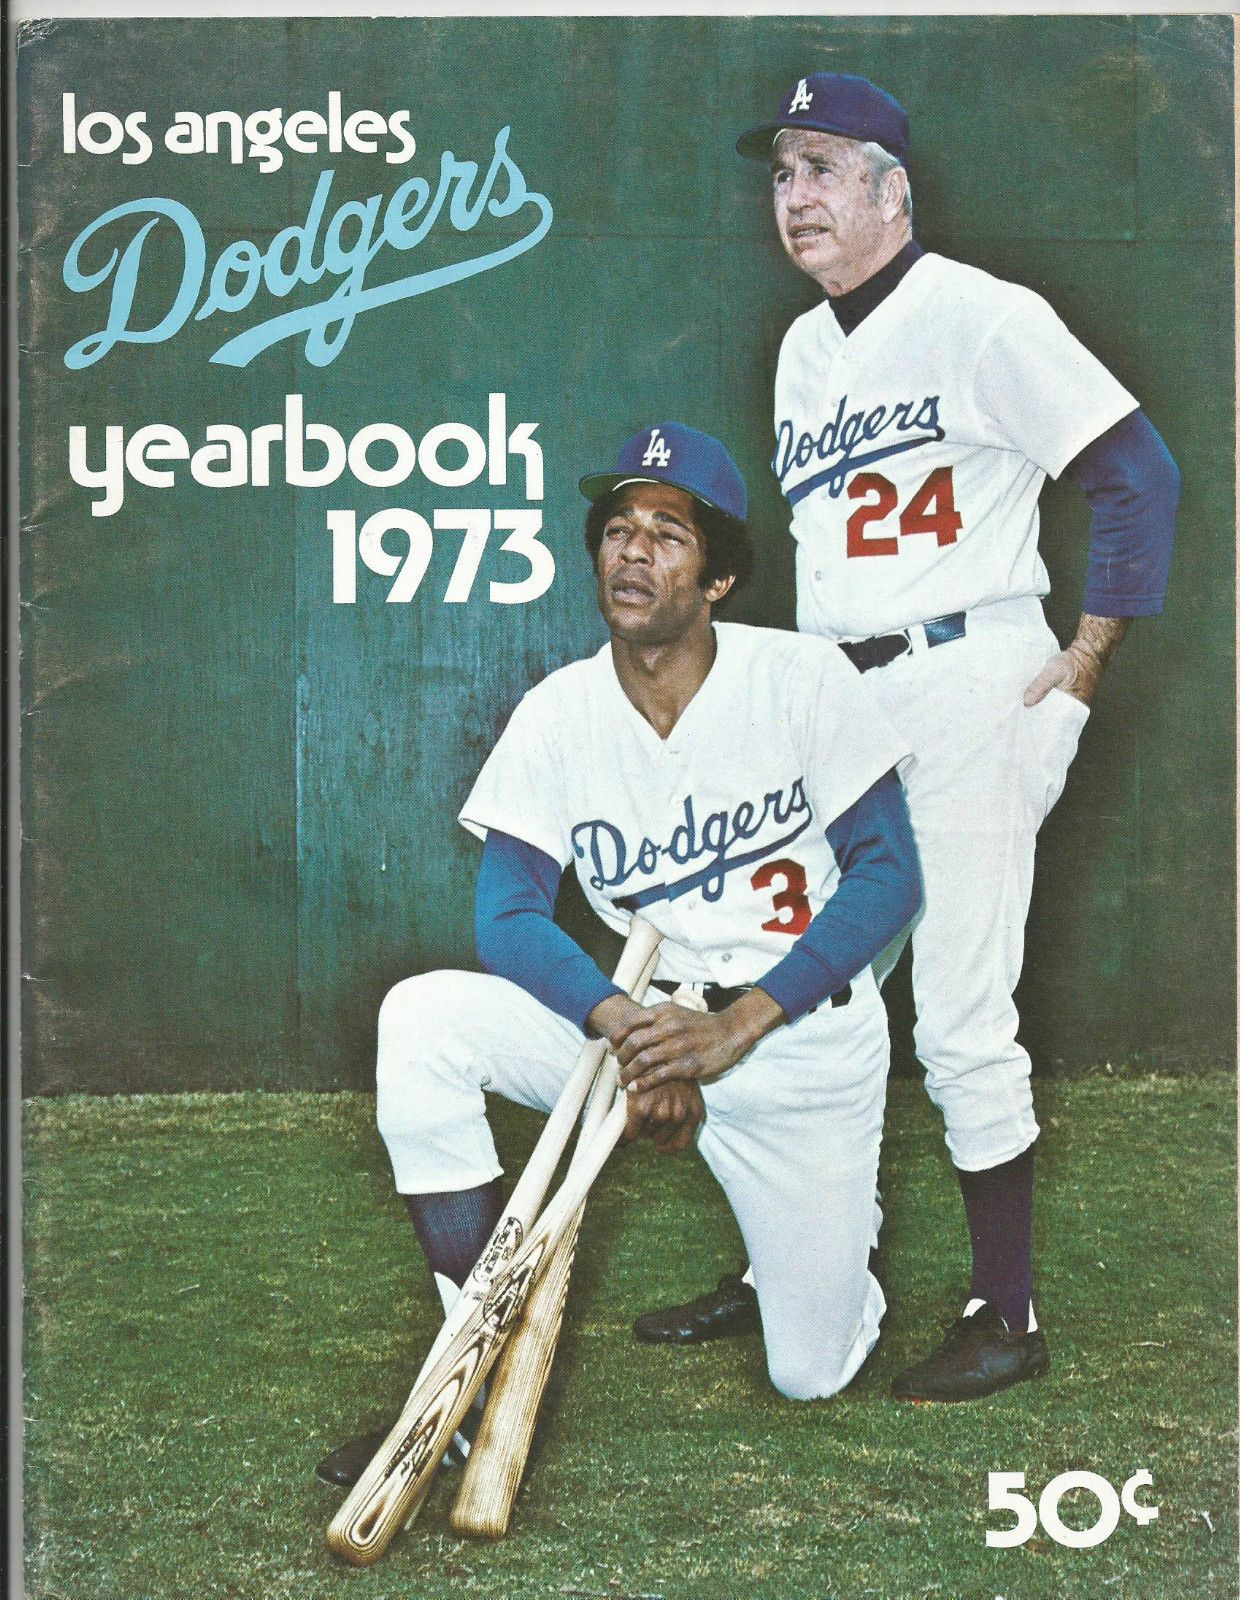 1973 Los Angeles Dodgers Yearbook Mlb Dodgers Dodgers Baseball Los Angeles Dodgers